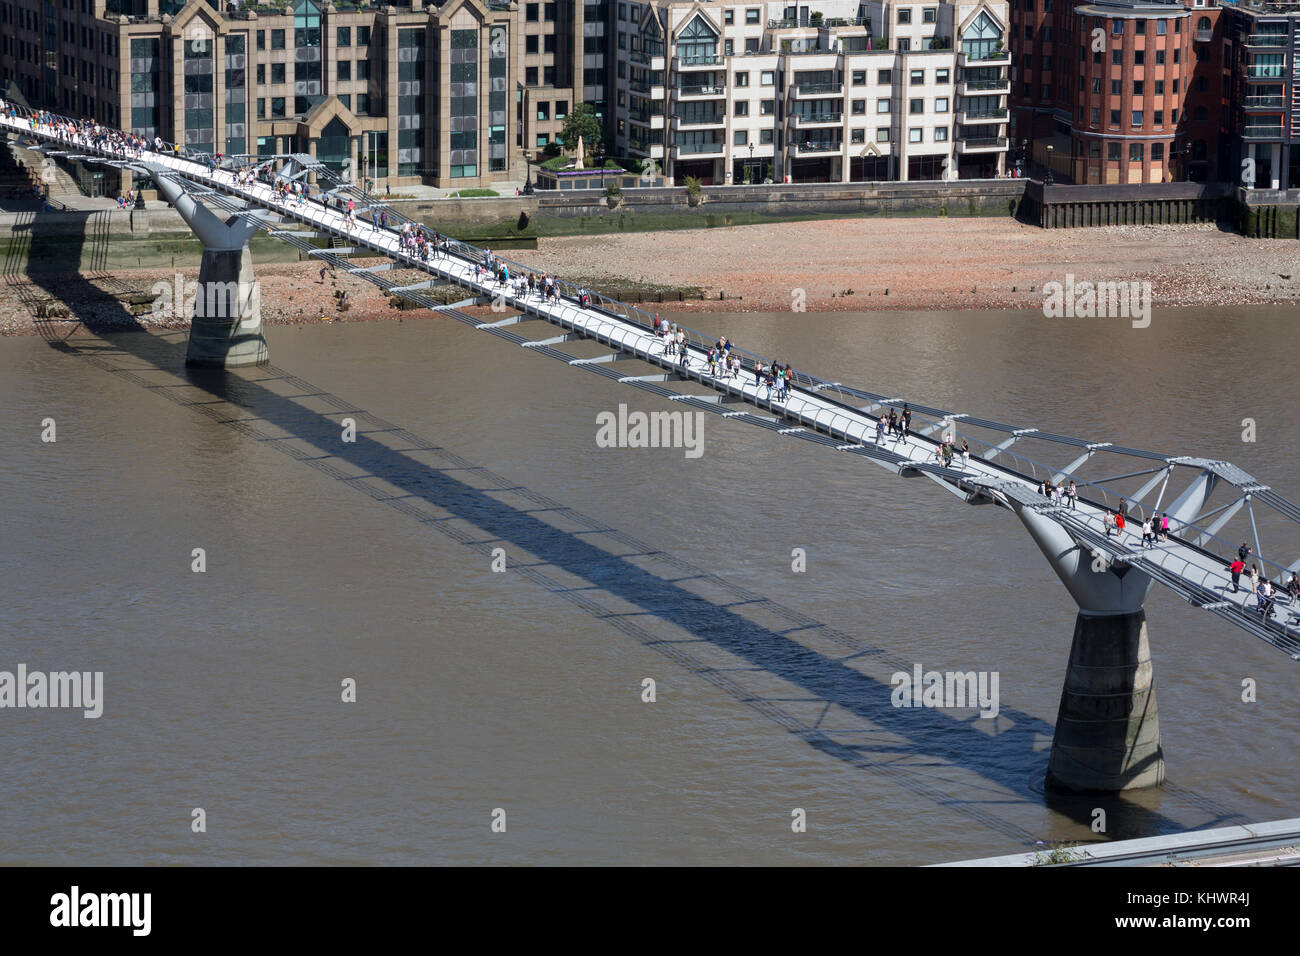 Millennium Bridge, London, UK - Stock Image